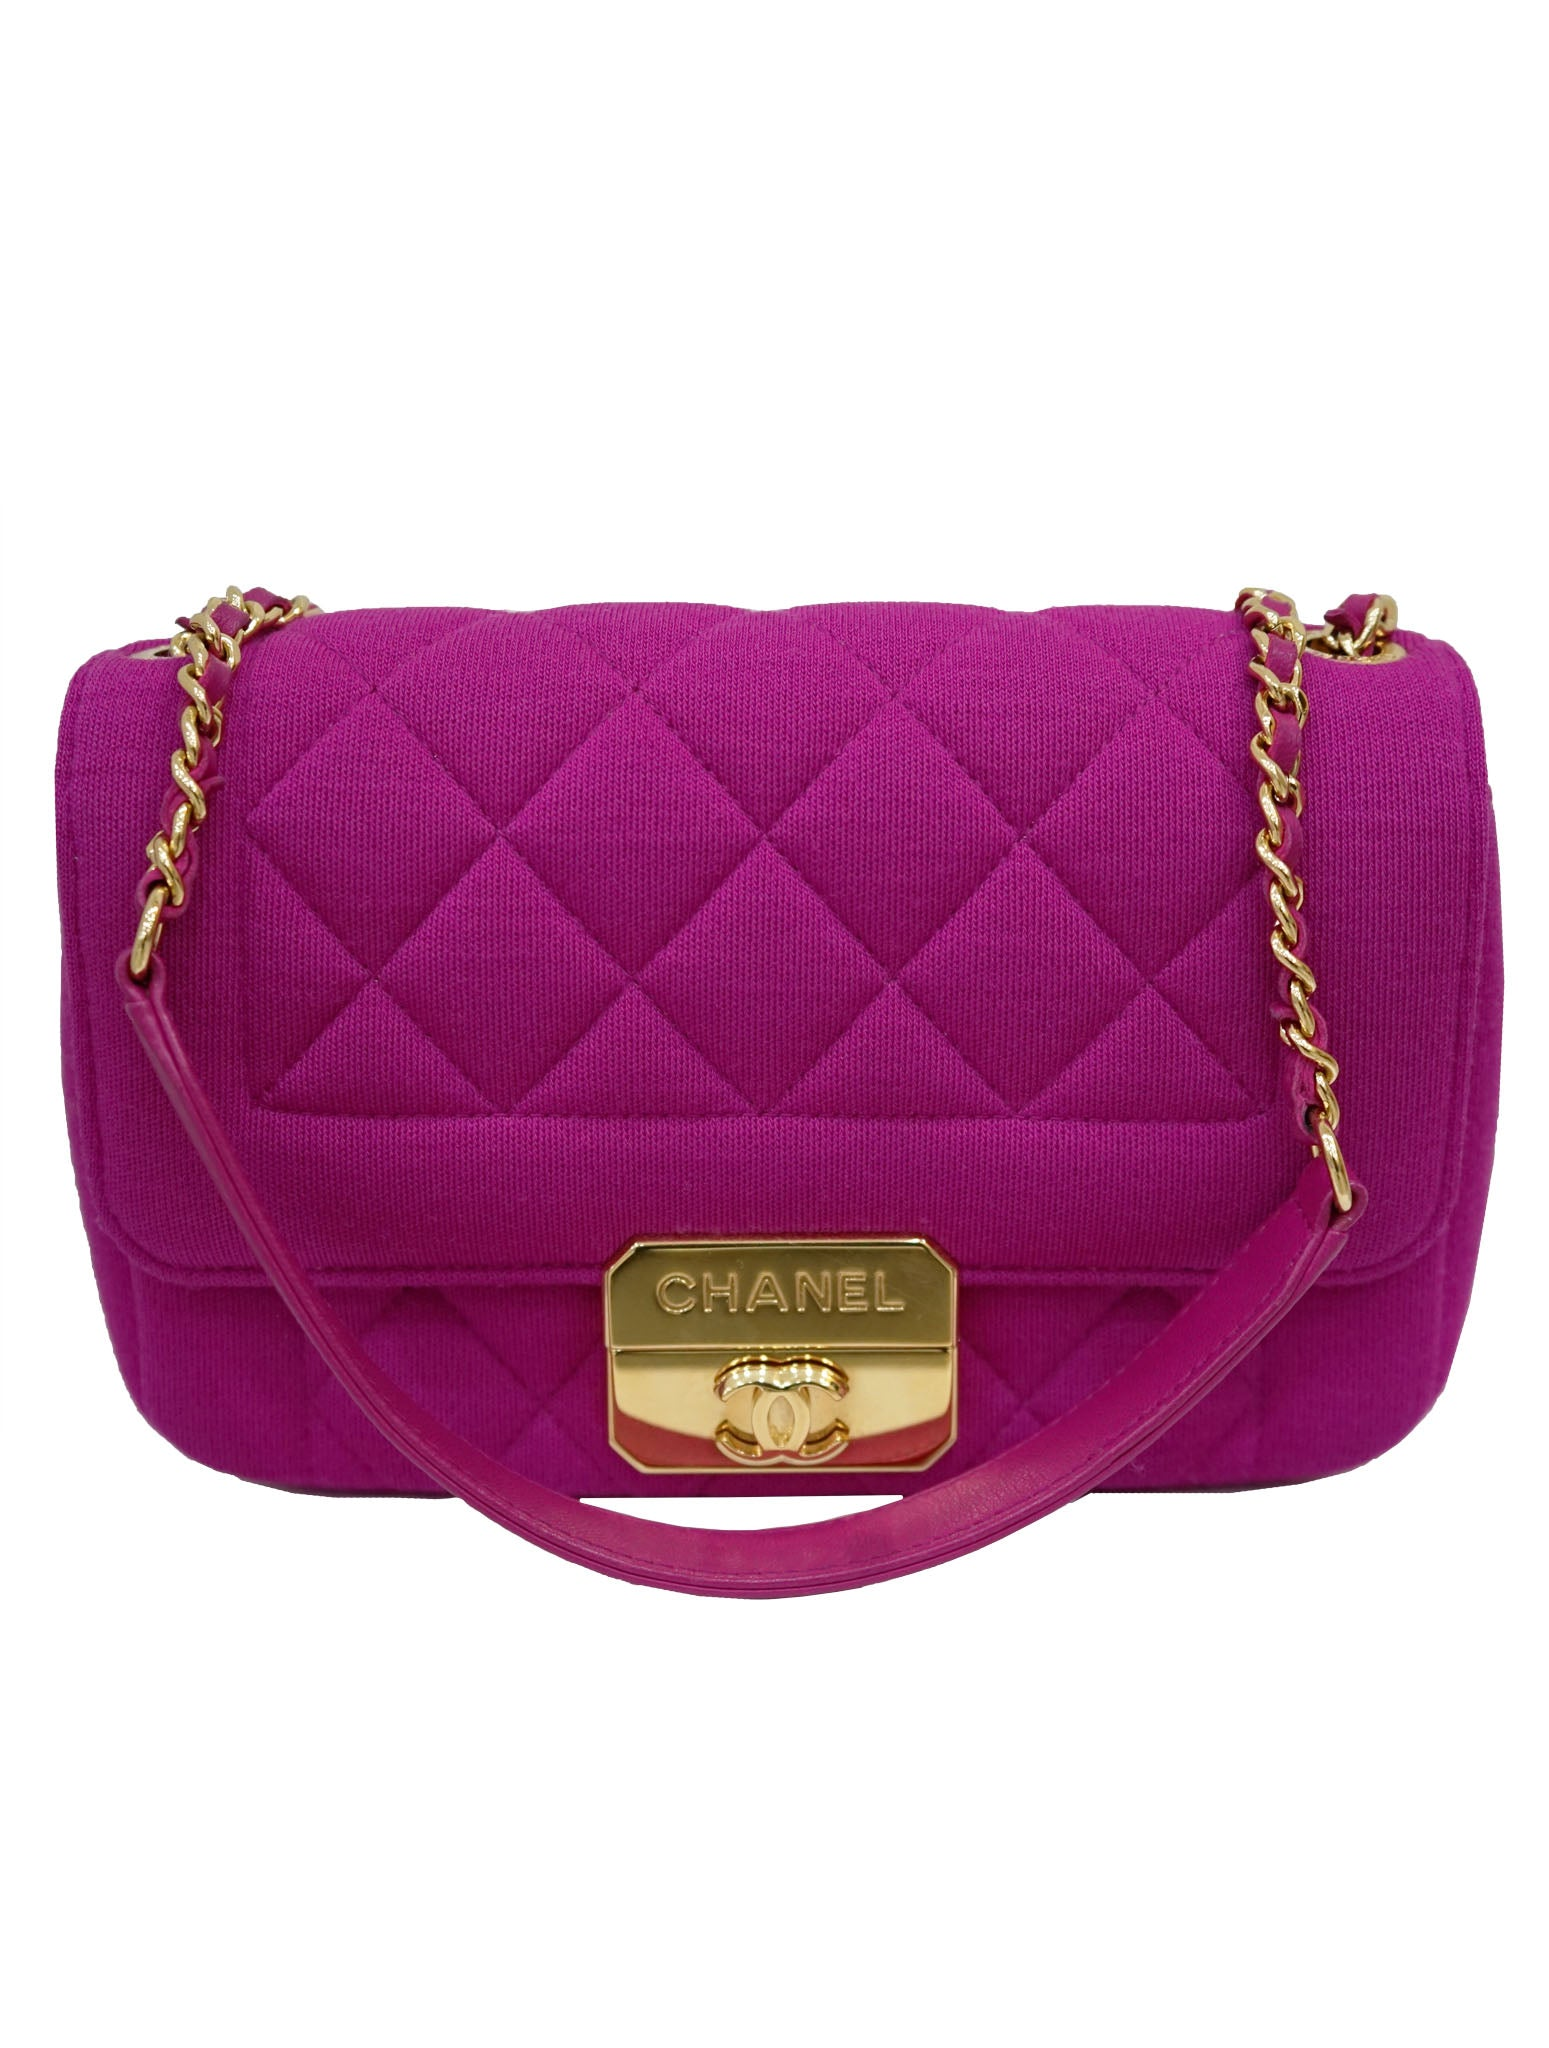 QUILTED JERSEY MINI FLAP BAG